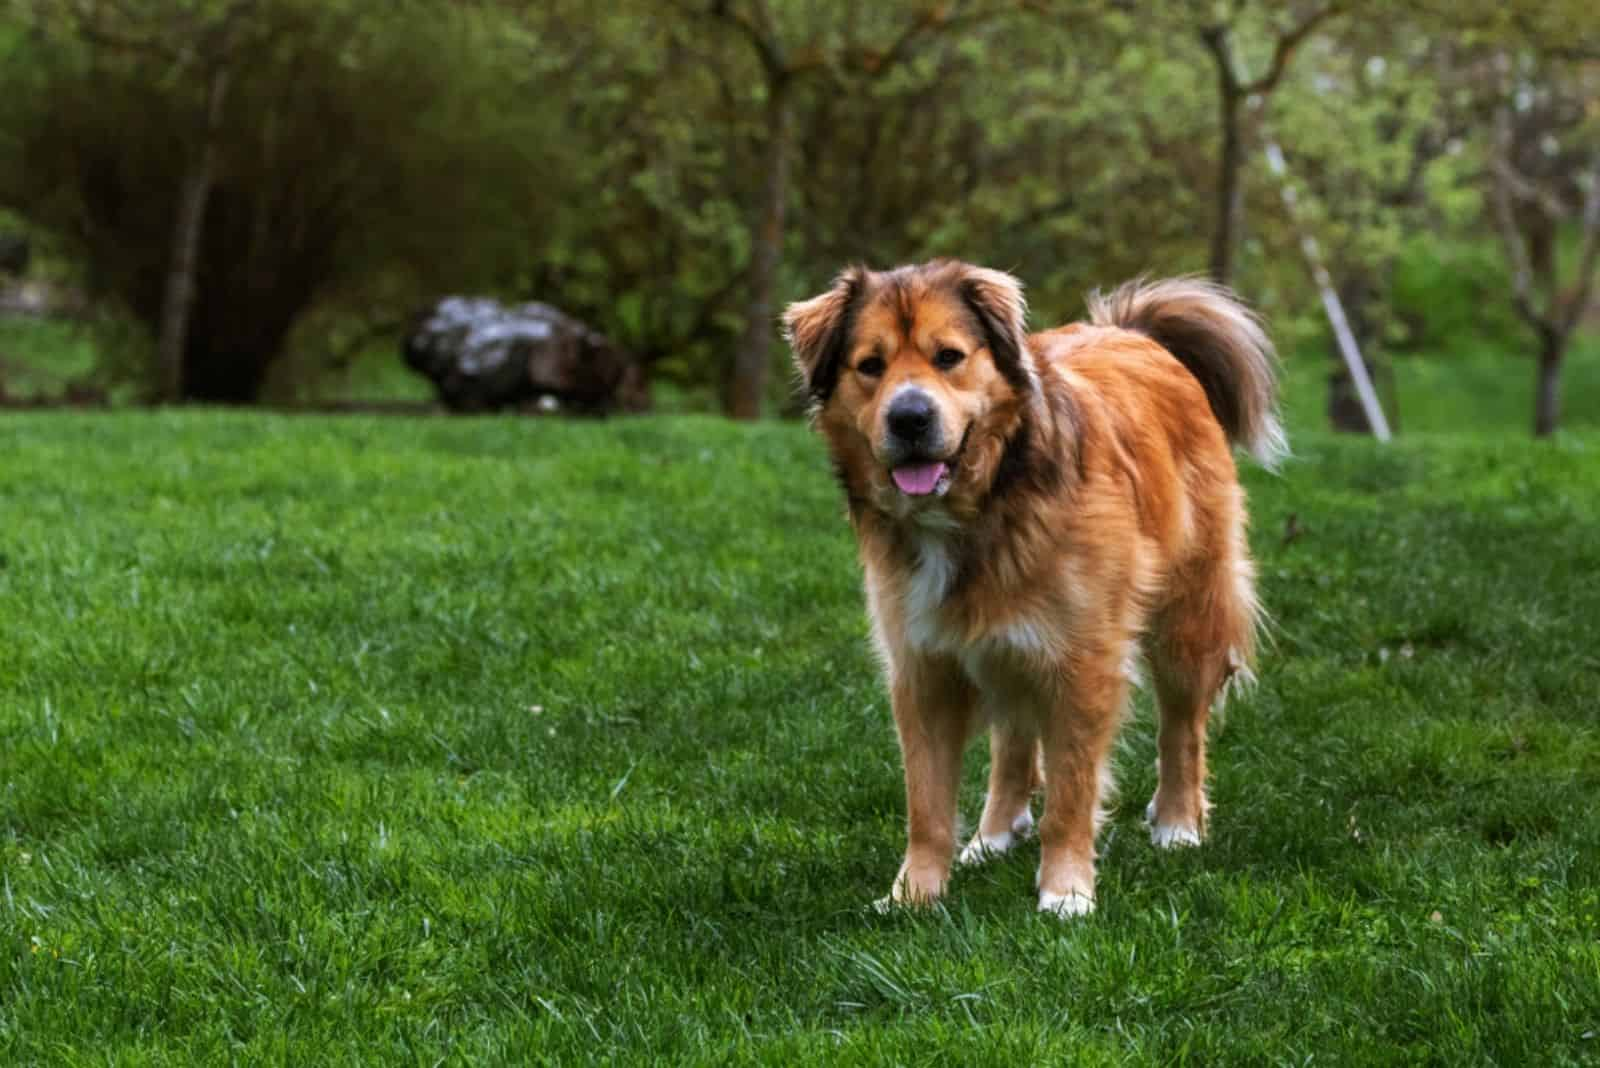 a large brown dog stands on the grass